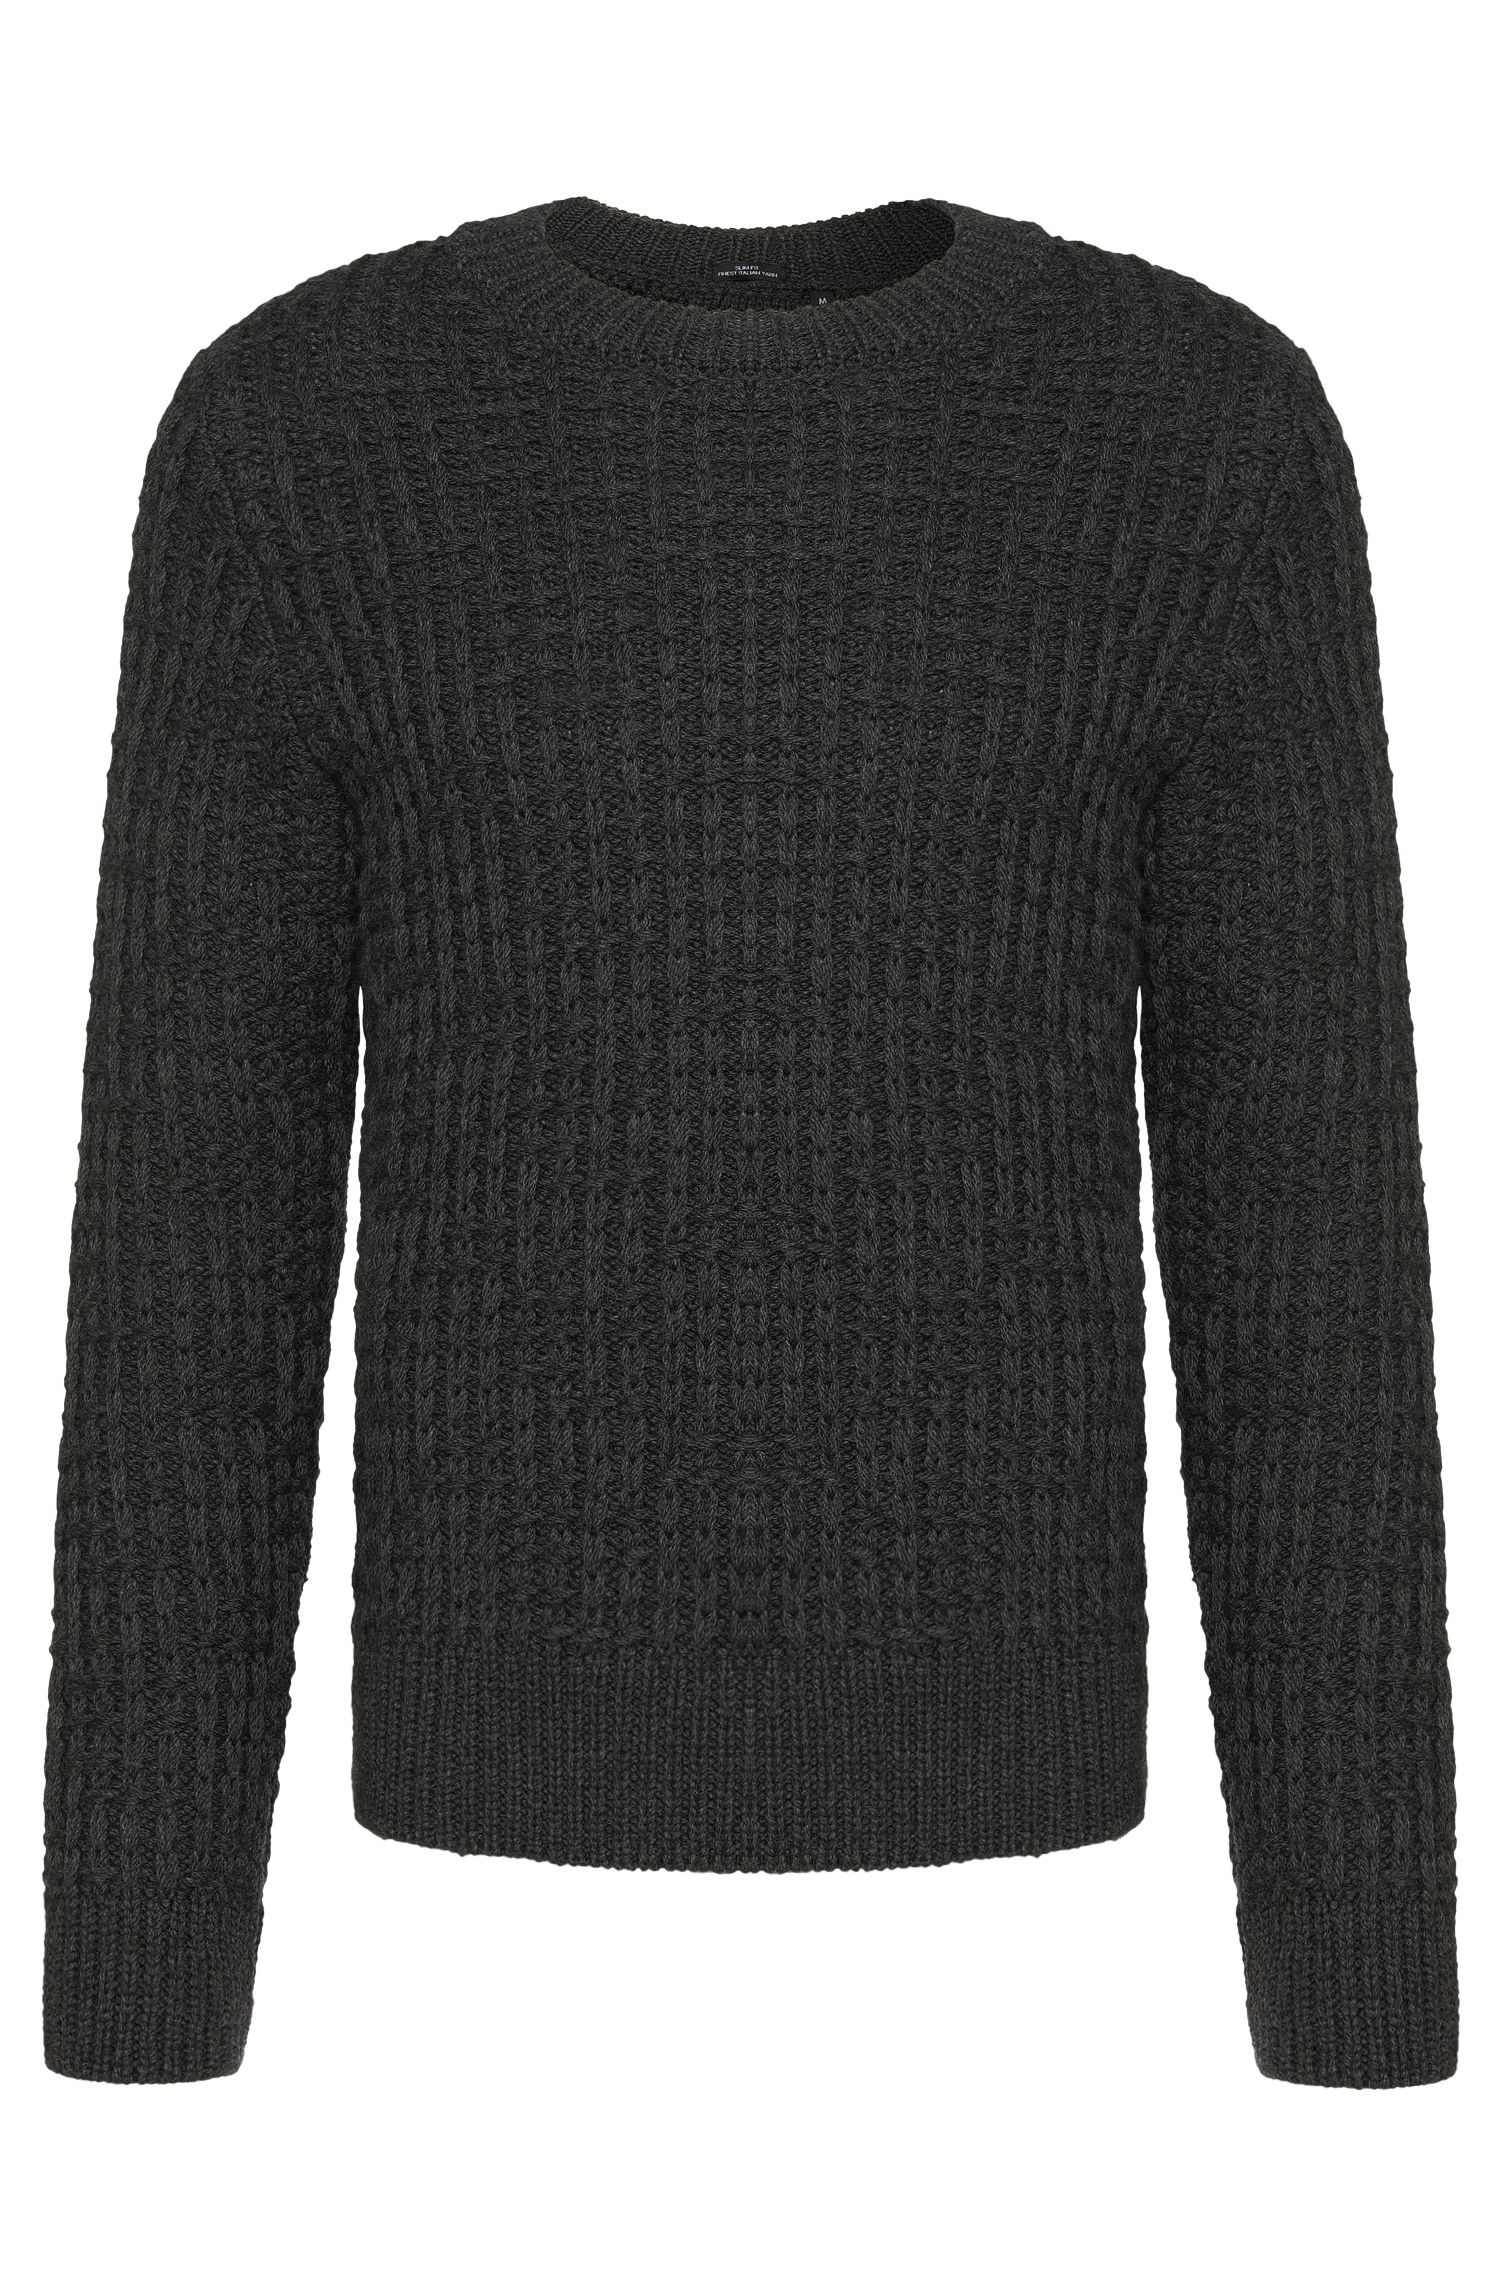 Pullover in misto lana vergine slim fit Tailored con motivo a maglia: 'T-Buccino'